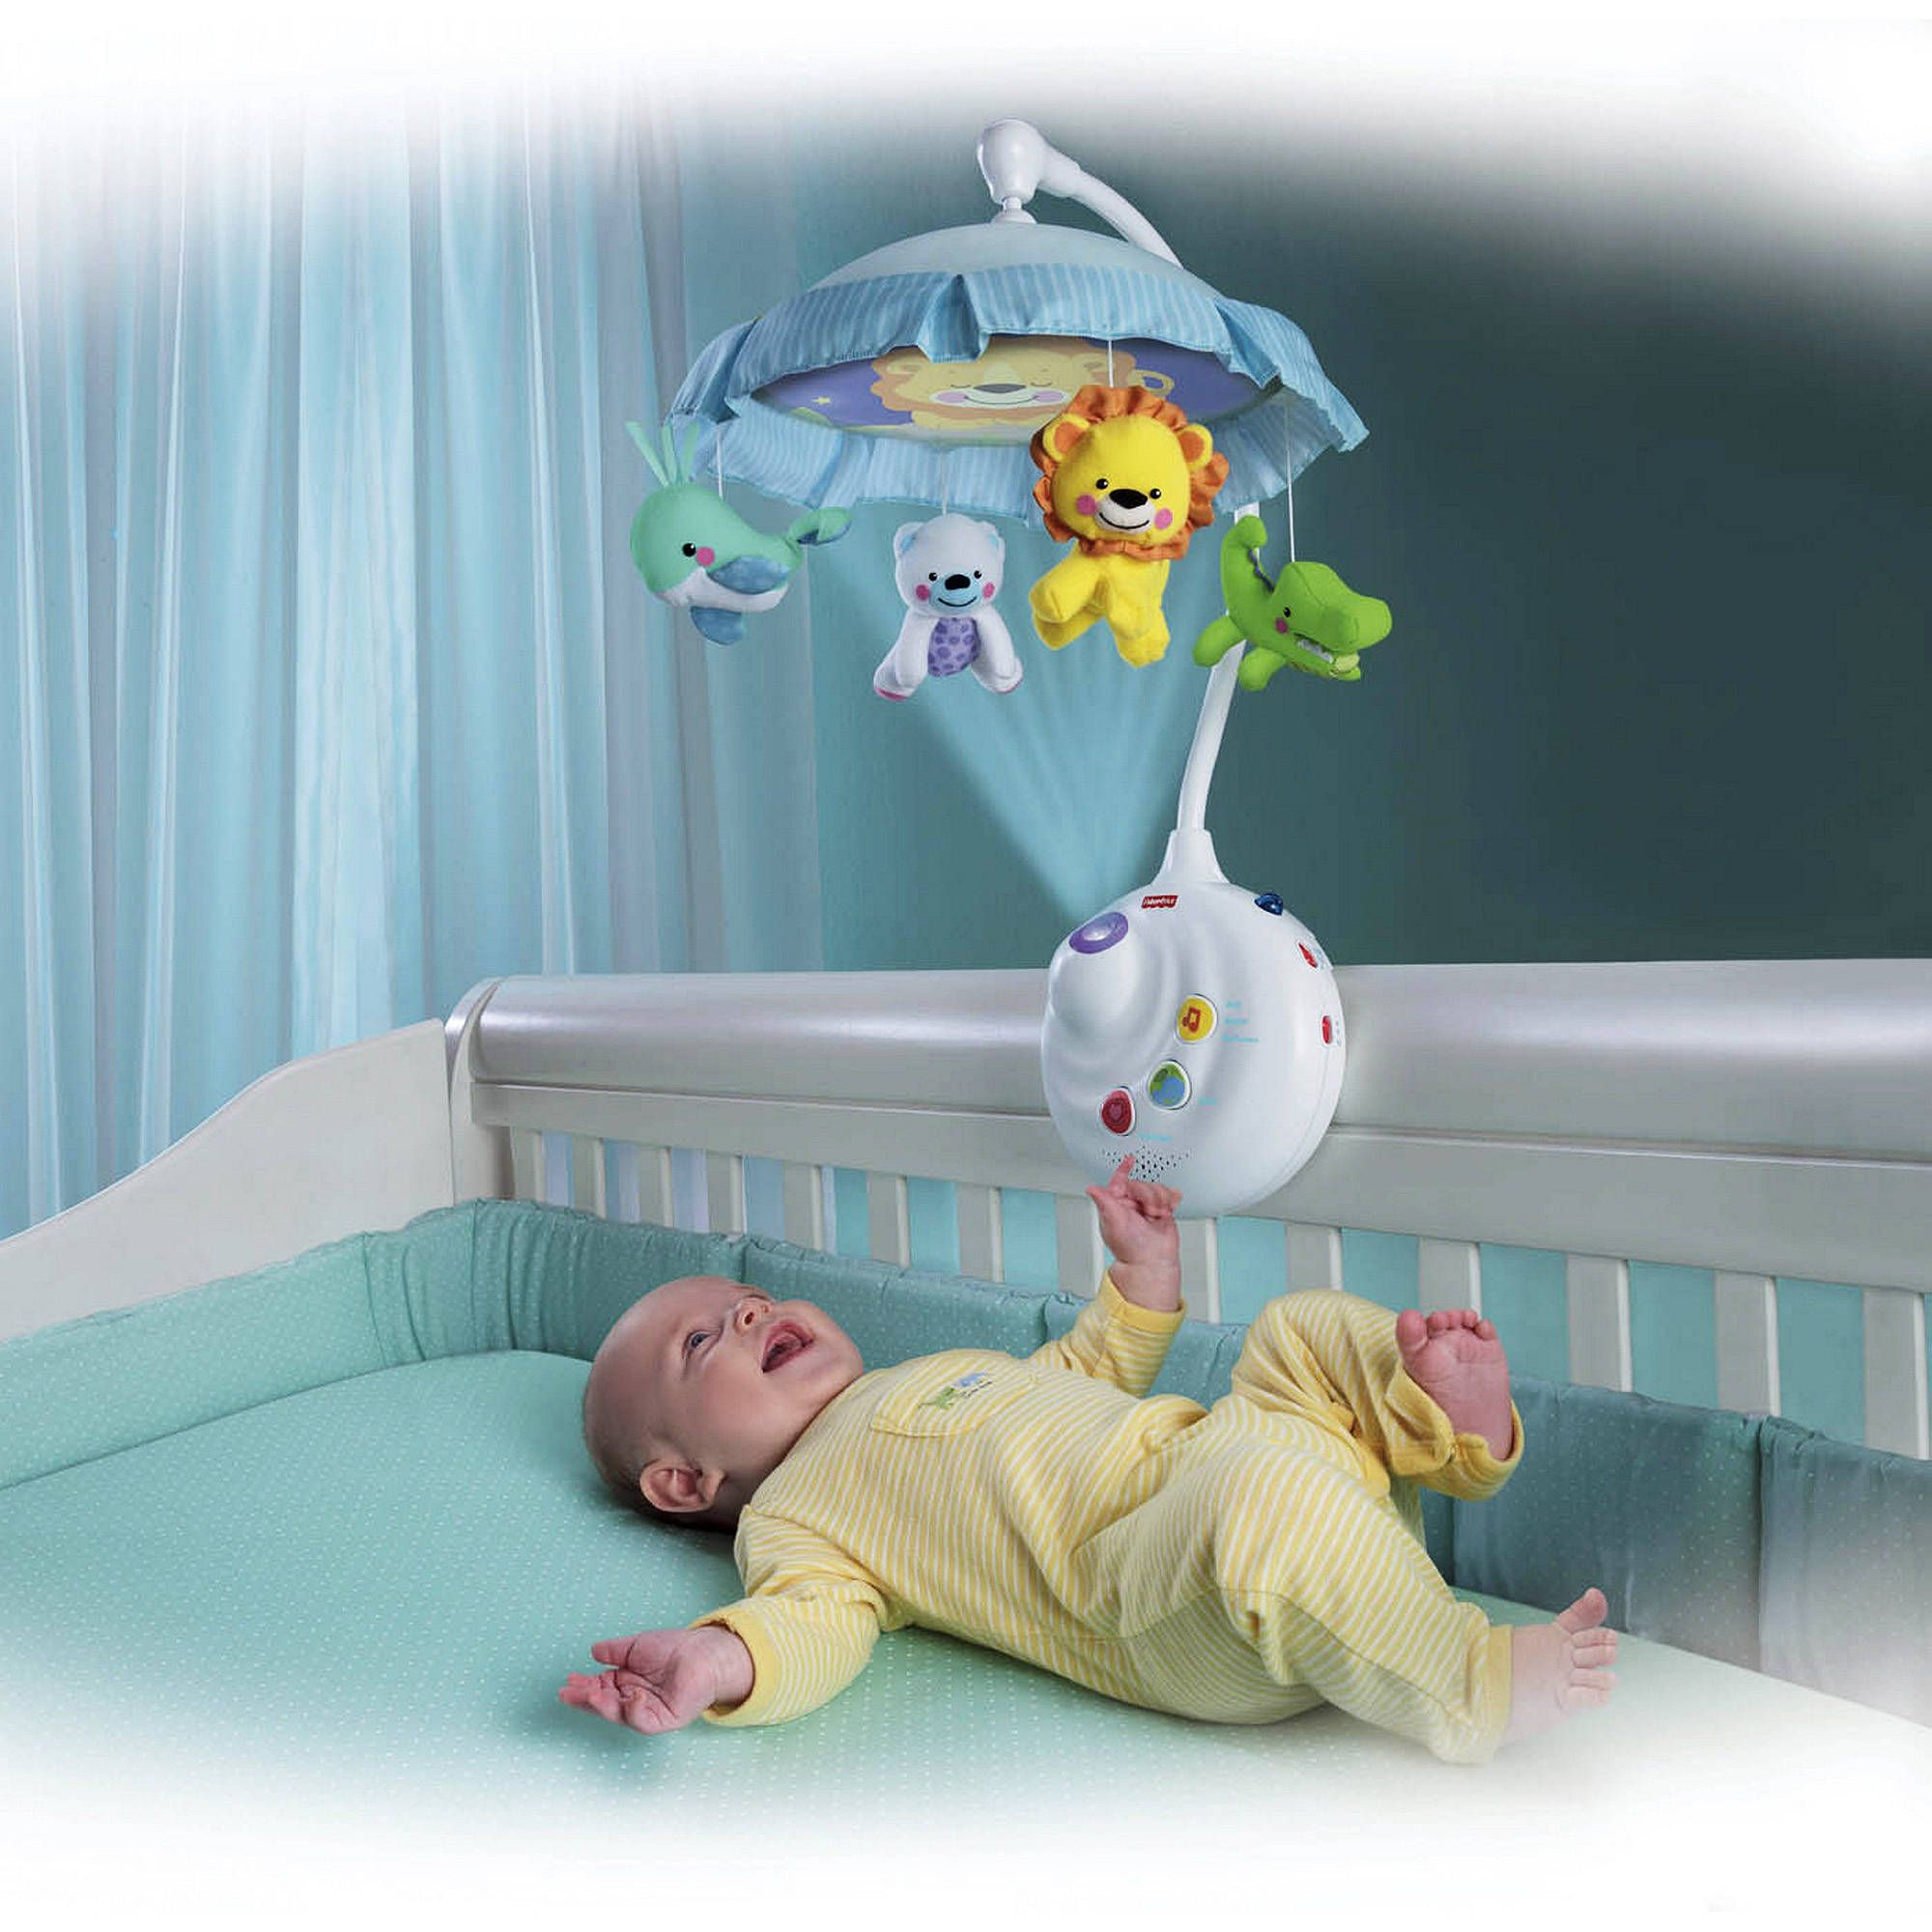 Fisher-Price 2-in-1 Projection Crib Mobile, Precious Planet | New ...